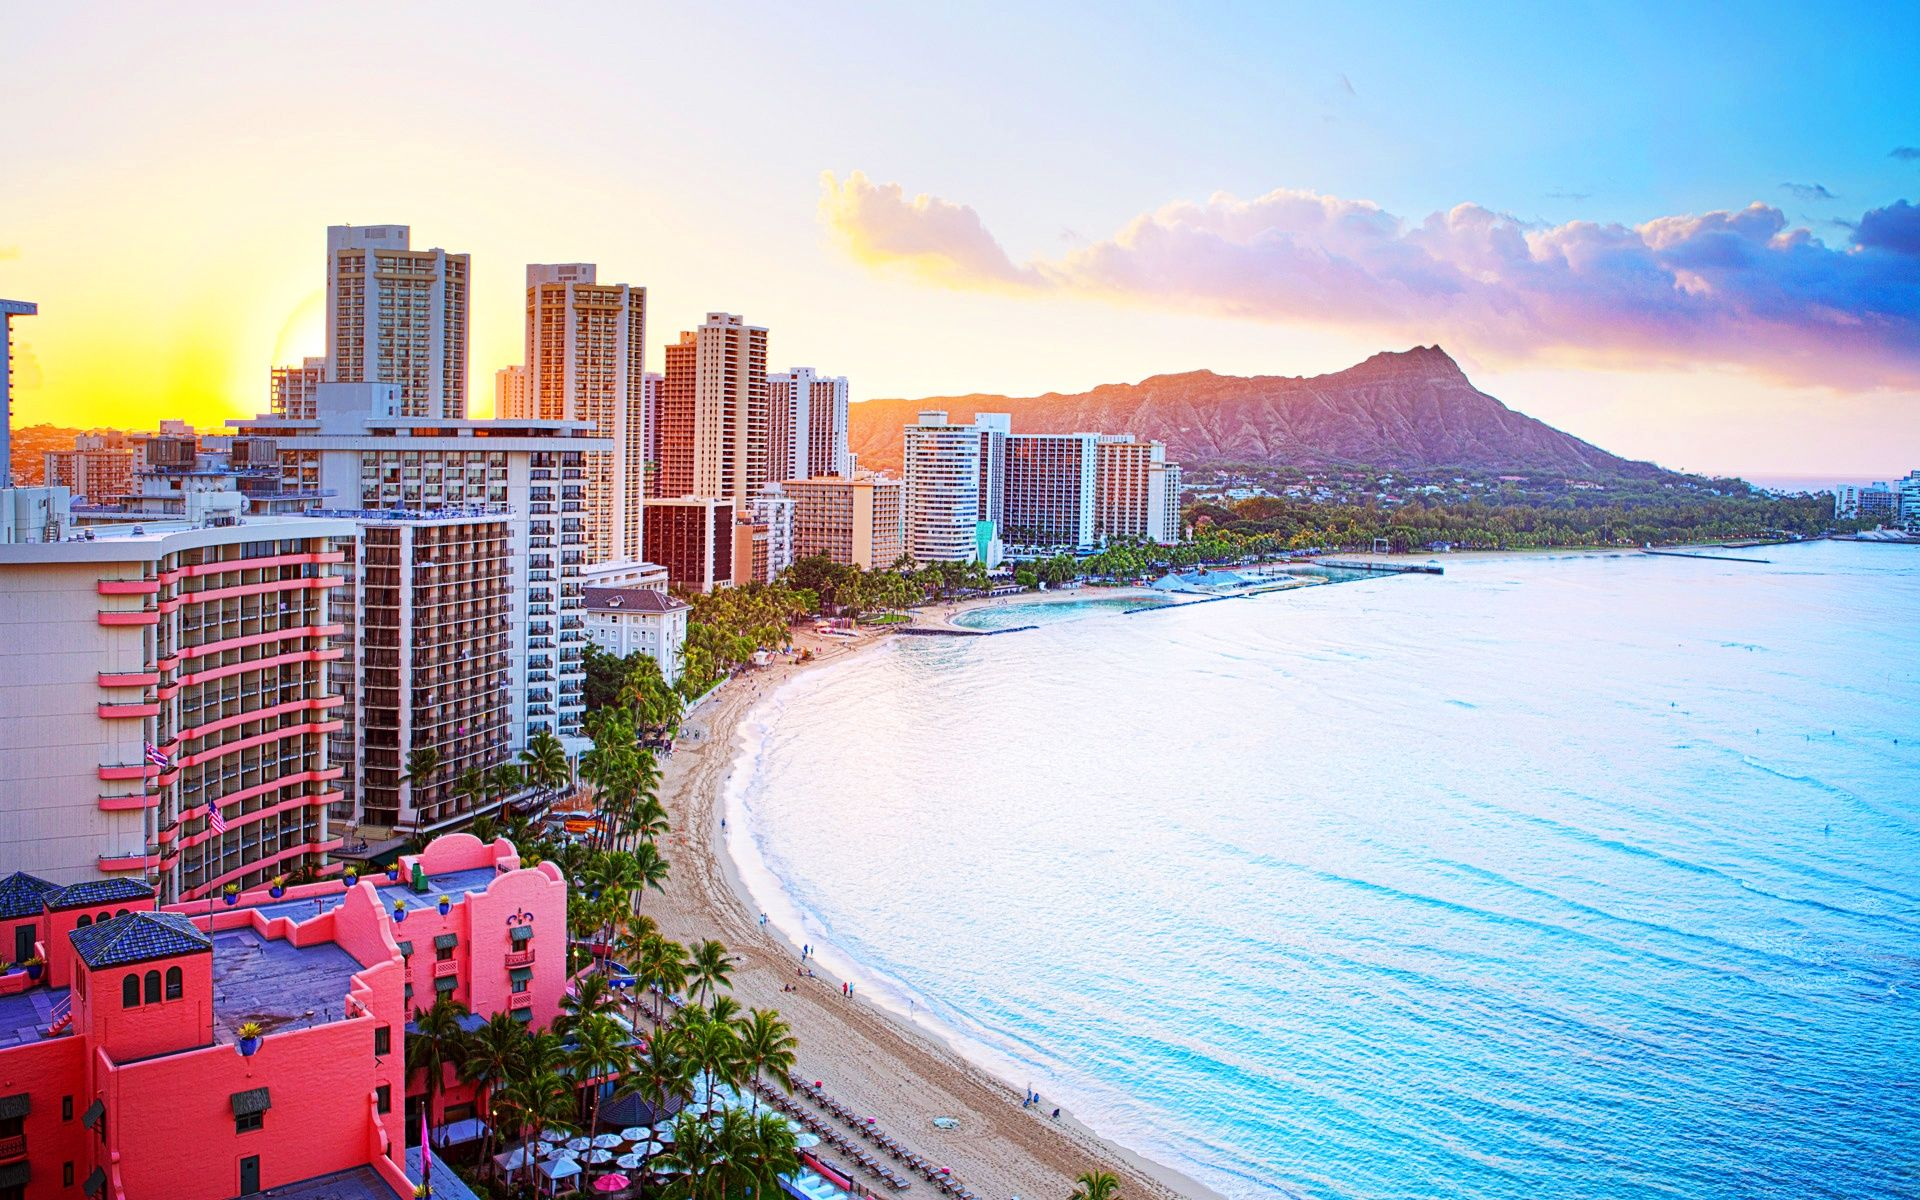 Hawaii Wallpaper Desktop Hd